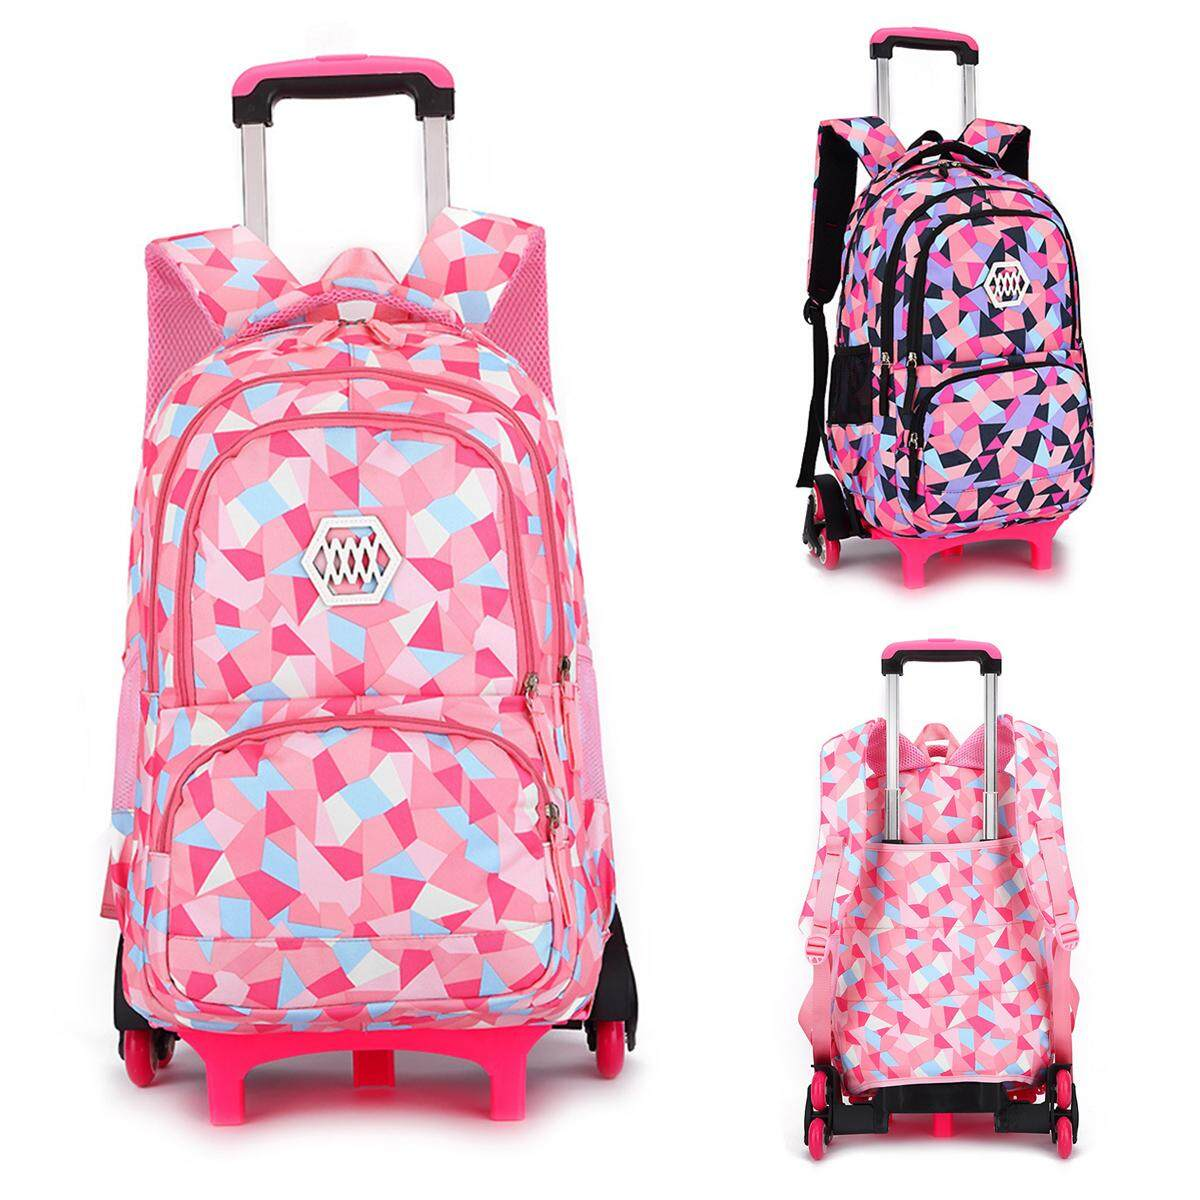 Girls Boys Children Trolley Backpack With 6 Wheels Kids Wheeled School Bag New 6wheel By Five Star Store.